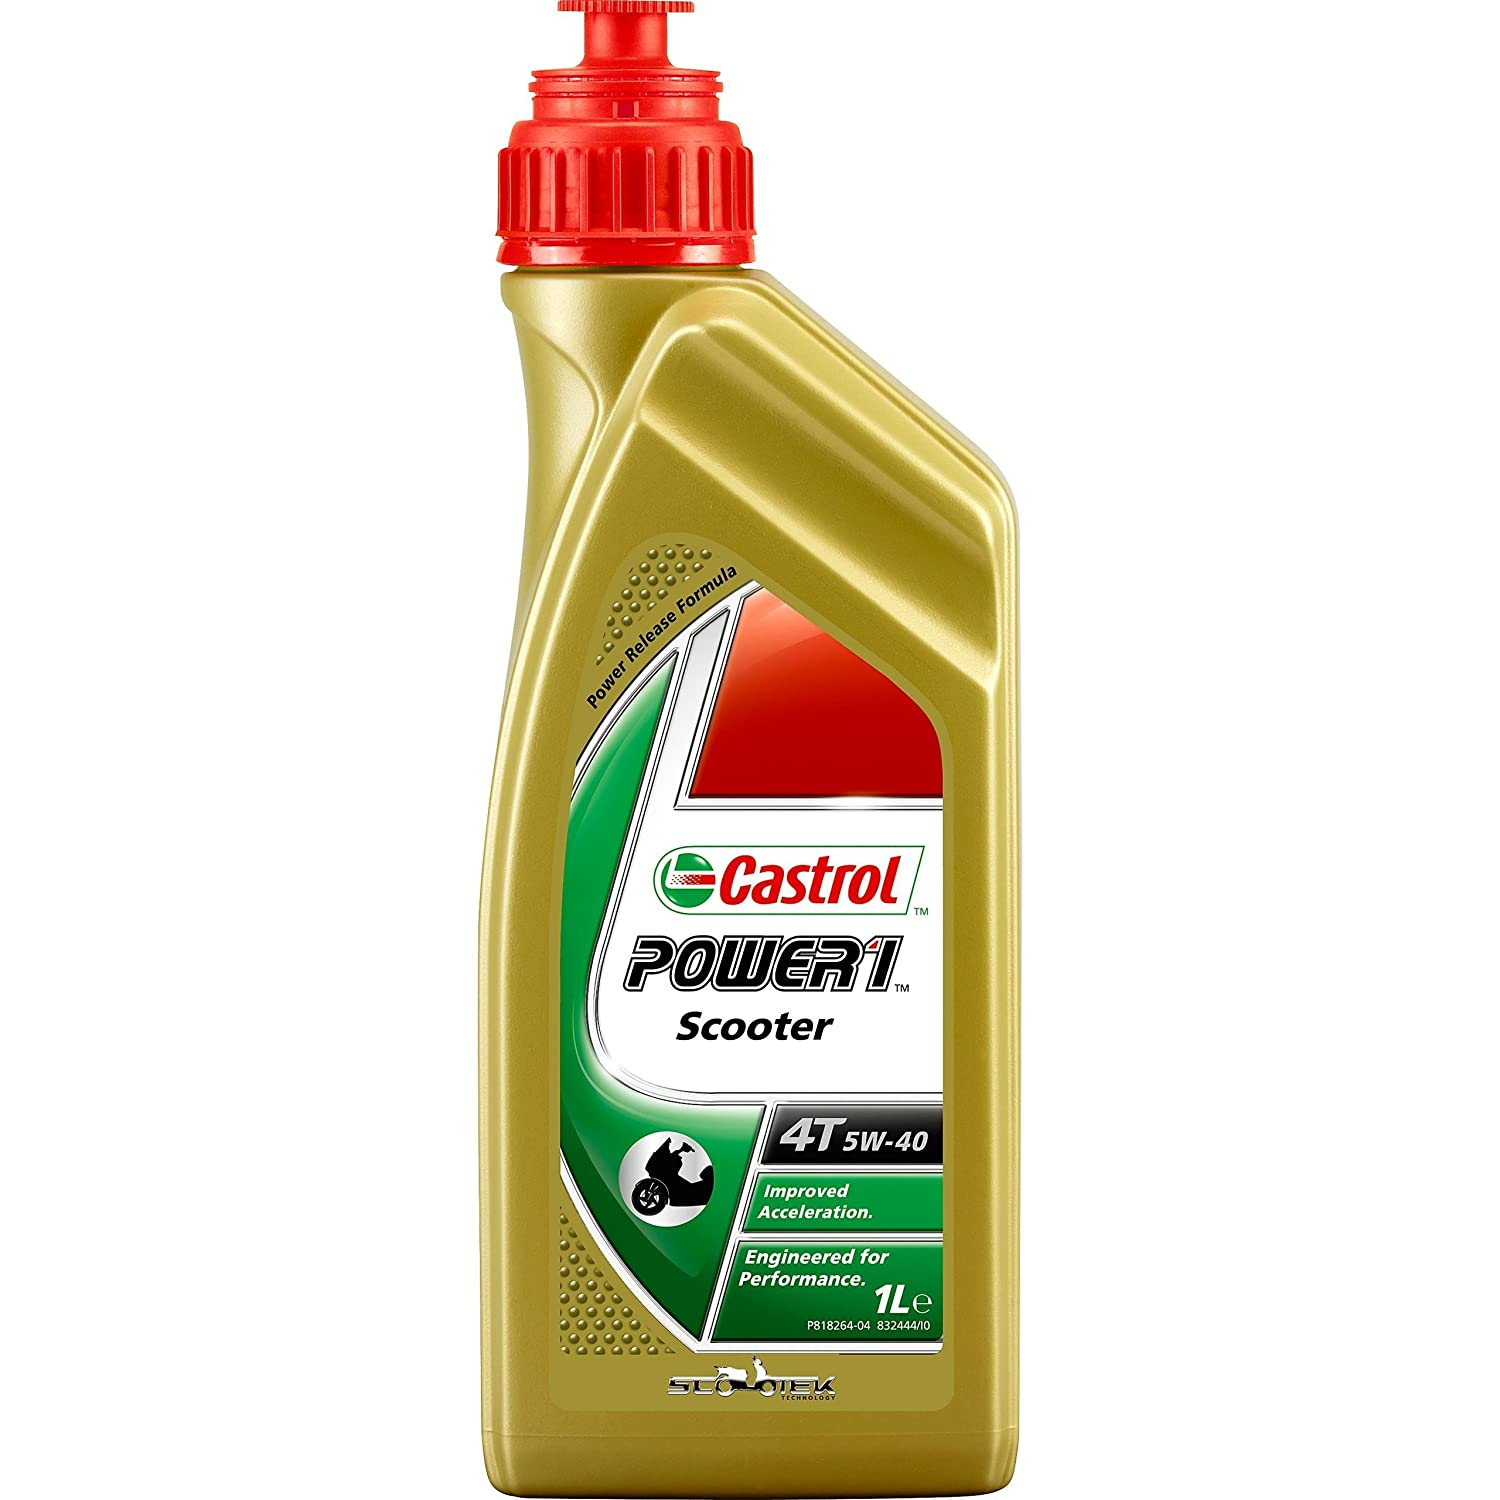 Castrol Power Scooter 4T 5W40 (1 litro) Castrol Limited 55879